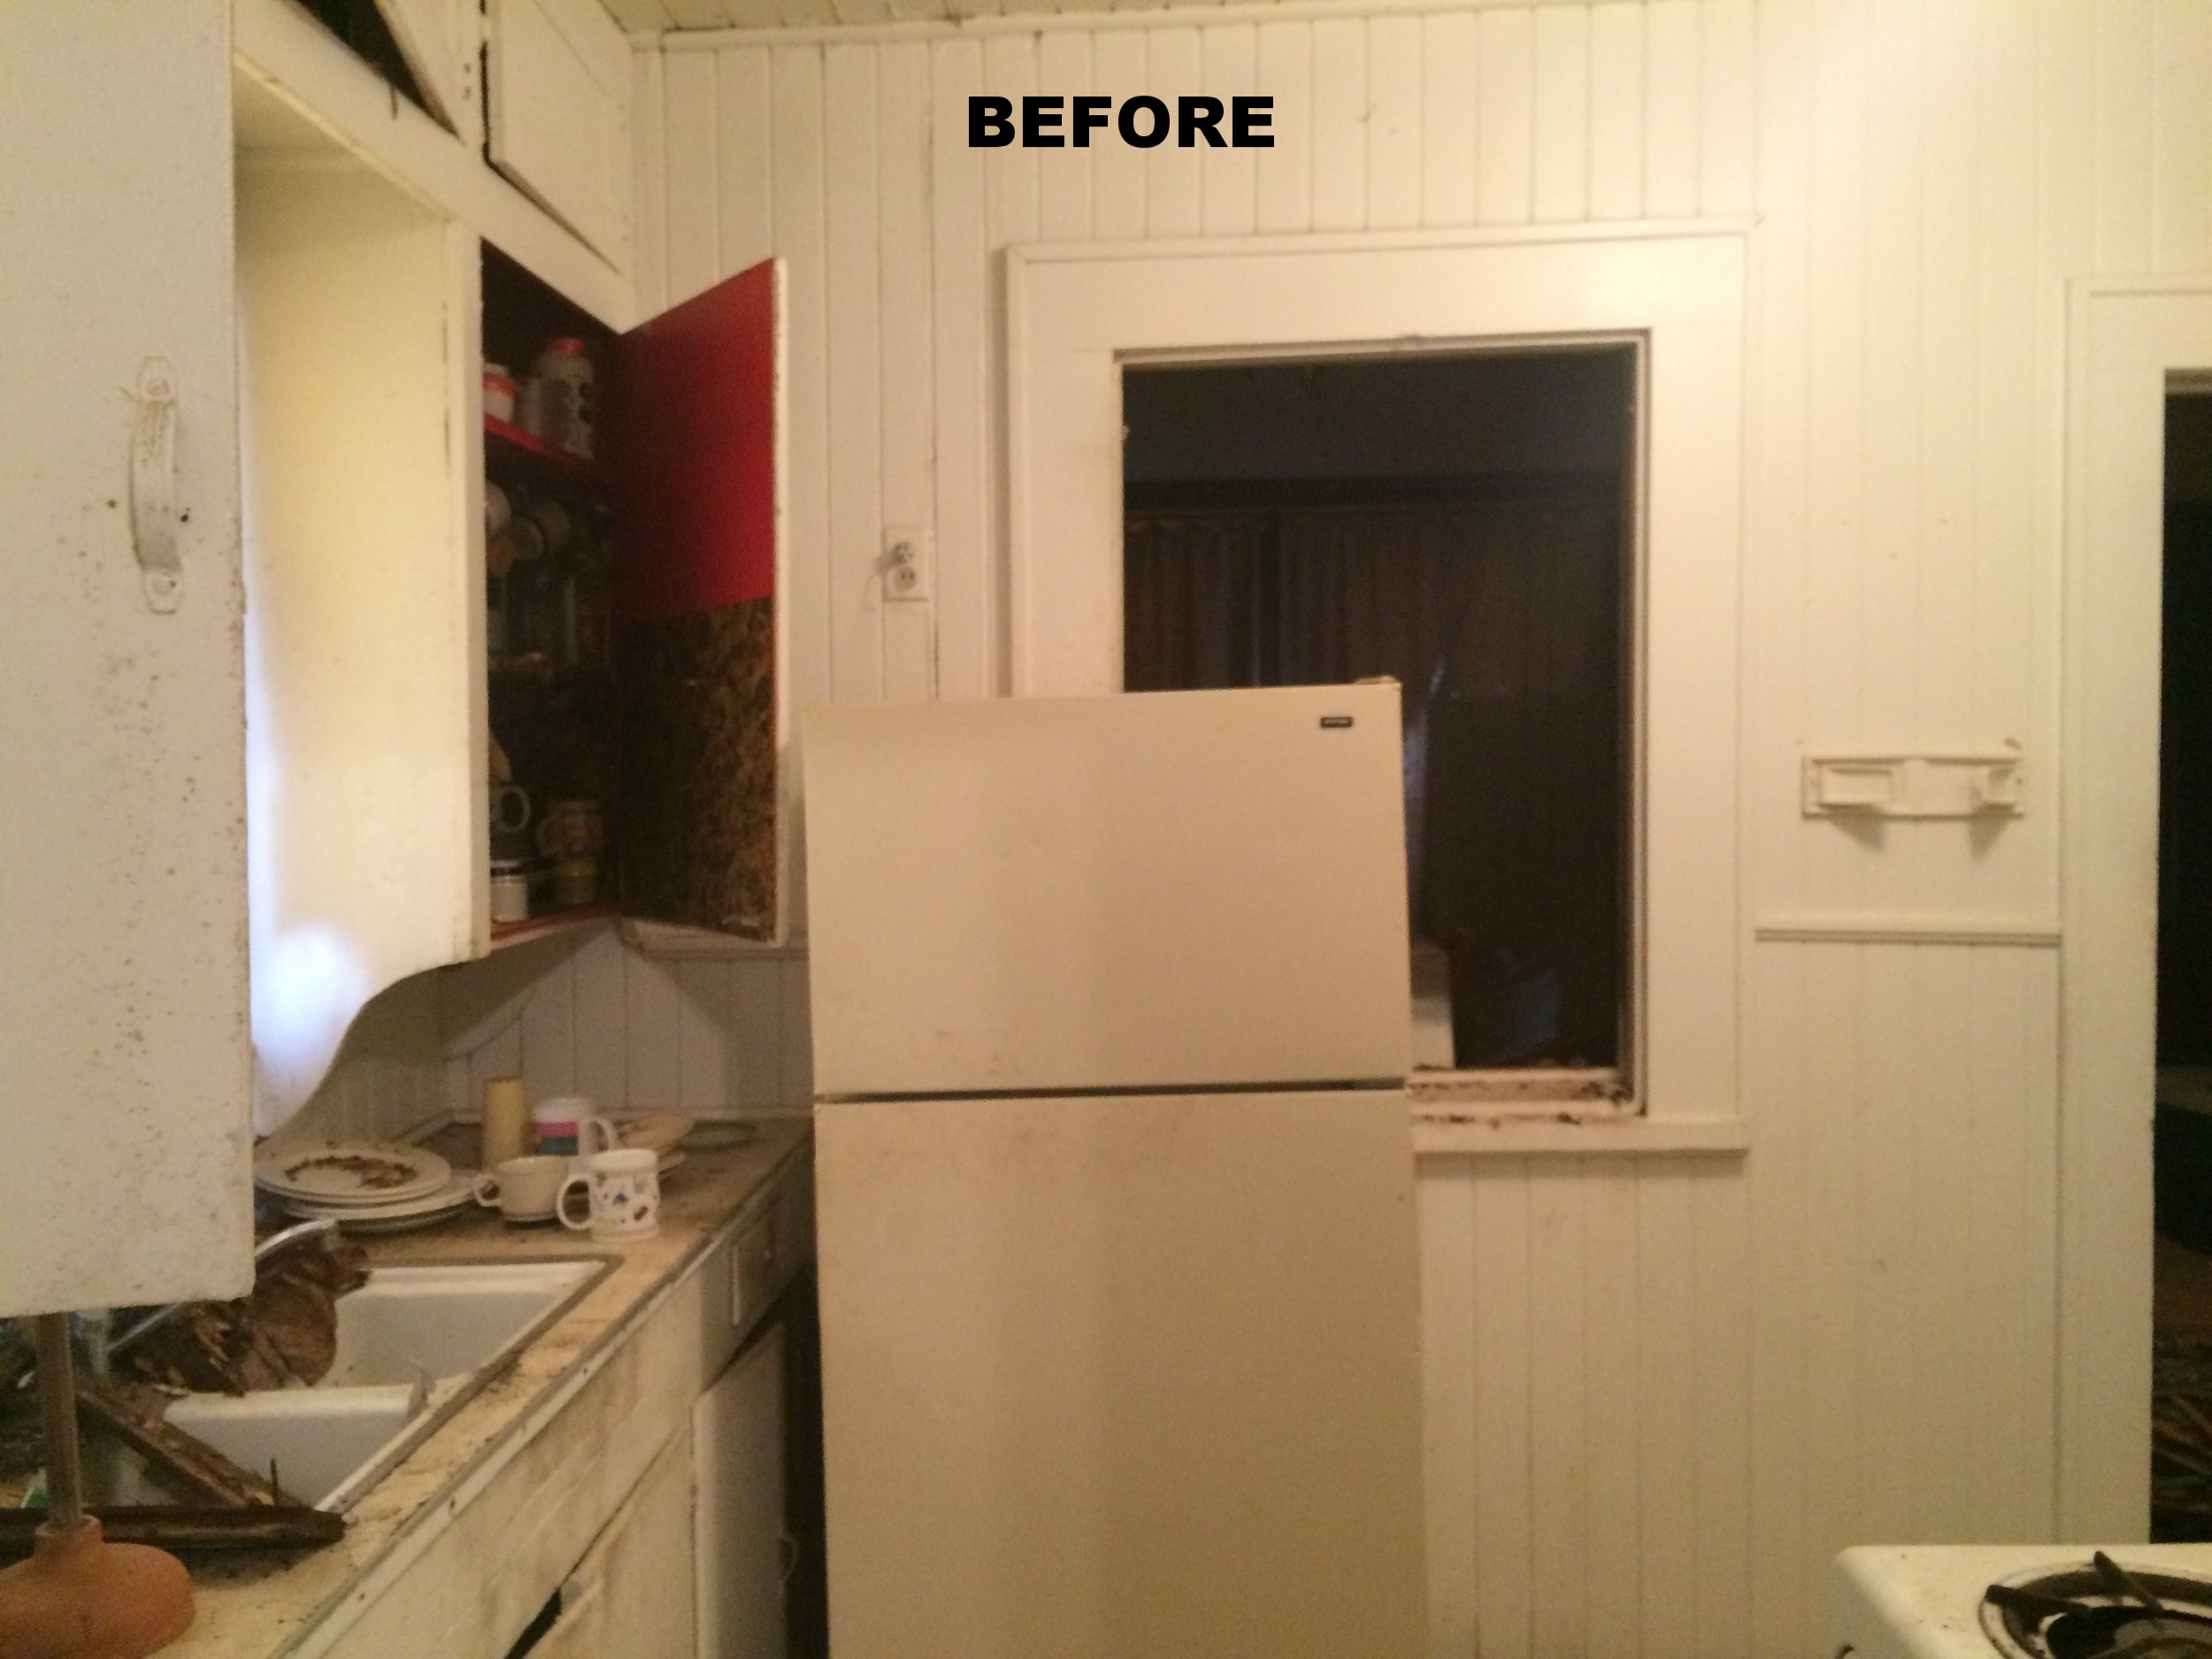 The kitchen just needed a little paint right?